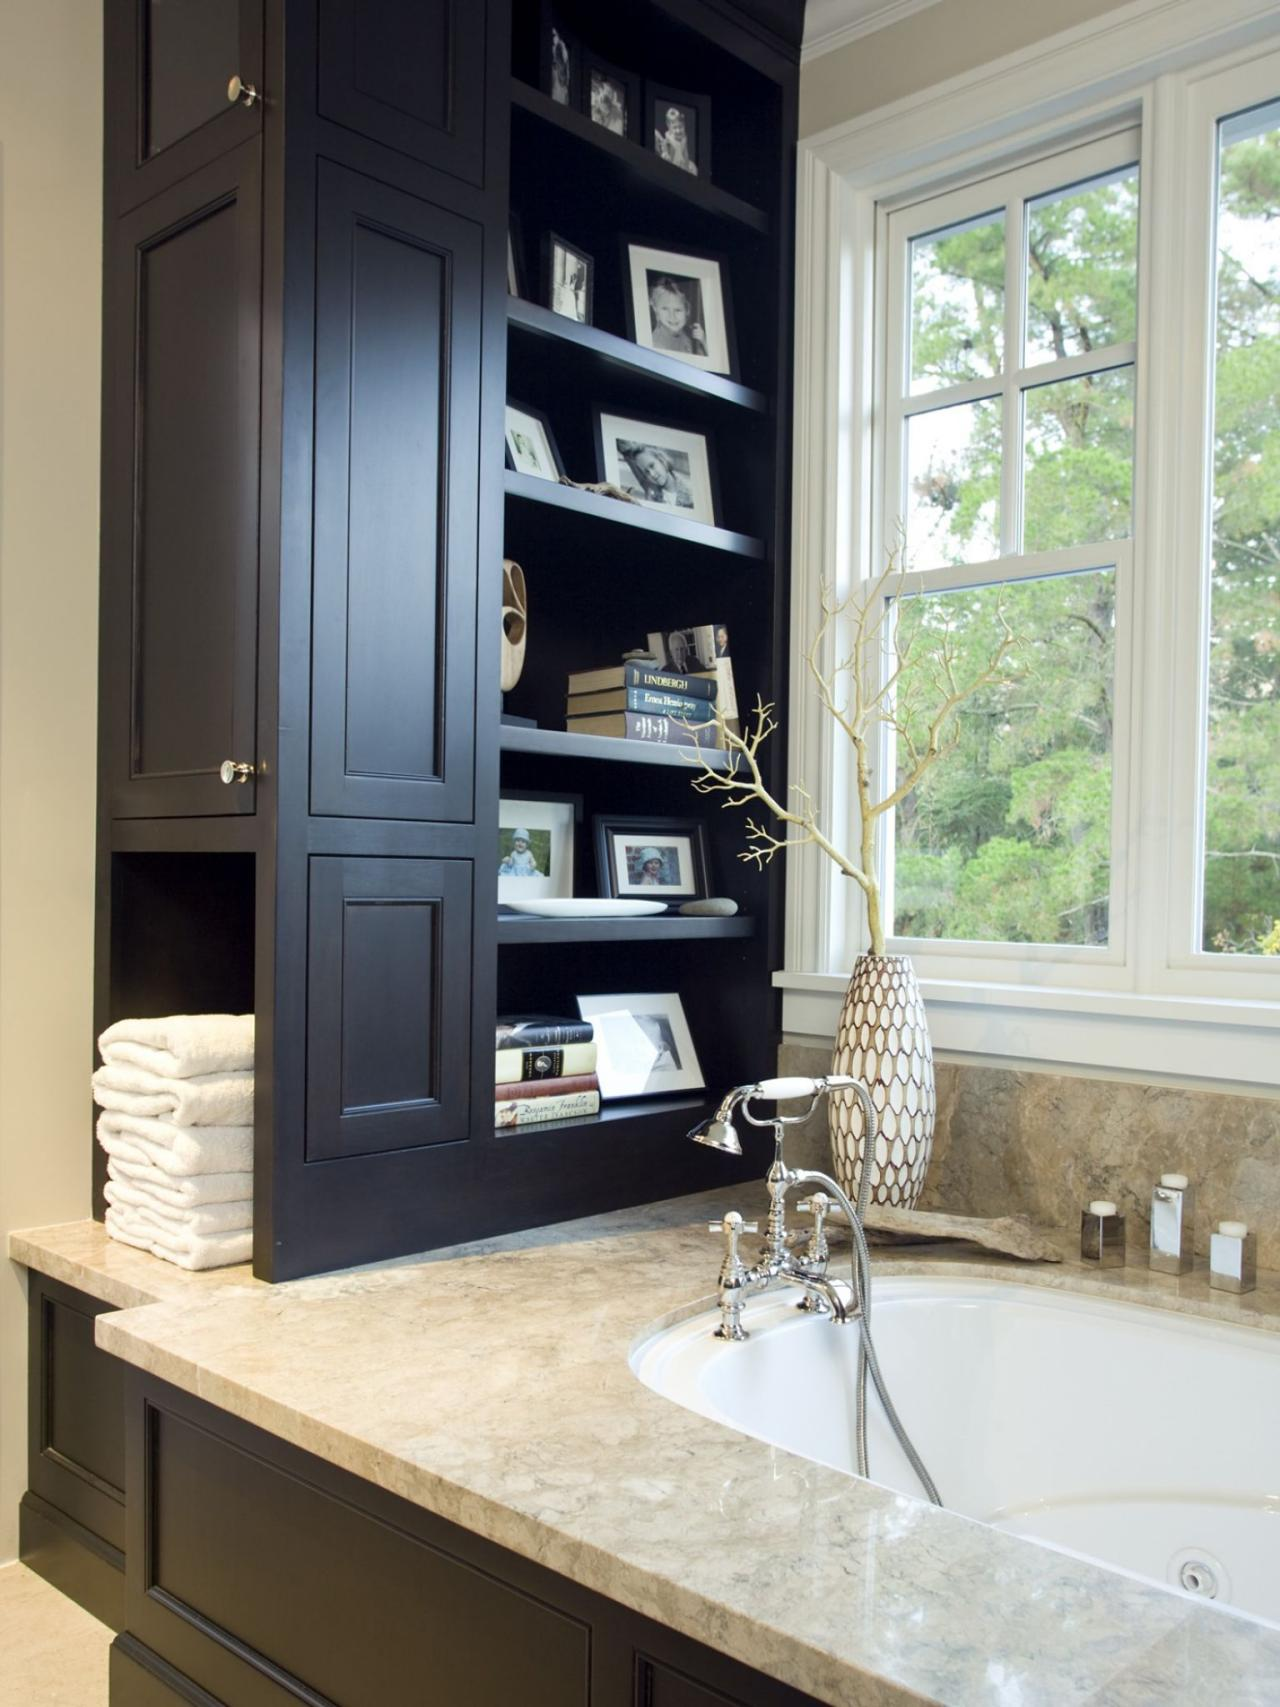 Tall bathroom storage cabinets - Smart Bath Storage Ideas